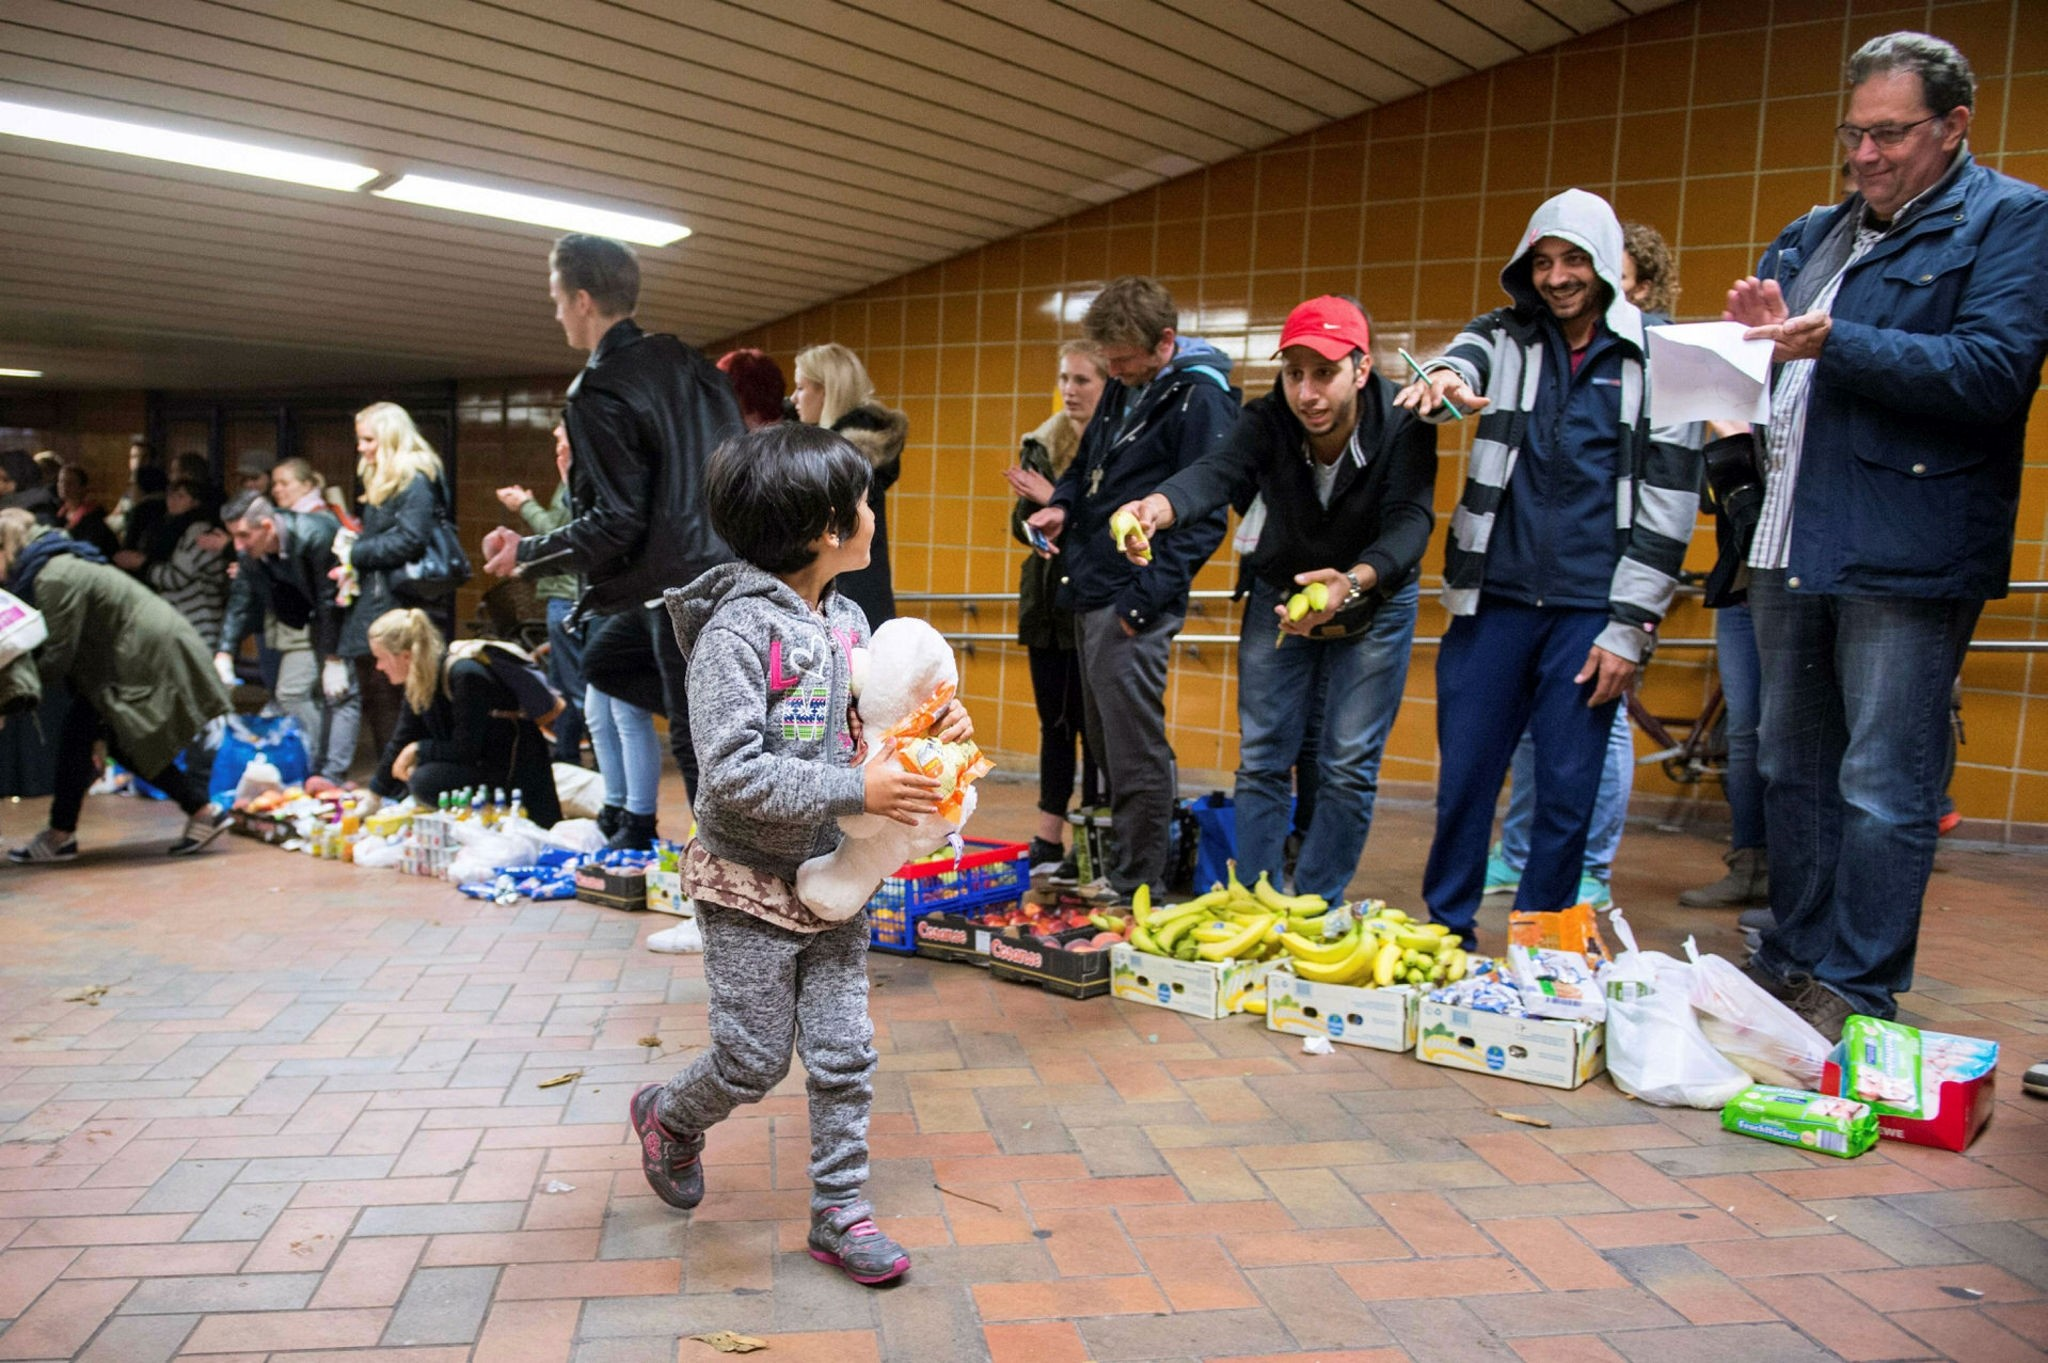 A migrant girl walks past volunteers who distribute food and drinks to migrants after their arrival at the railway station of Hamburg.